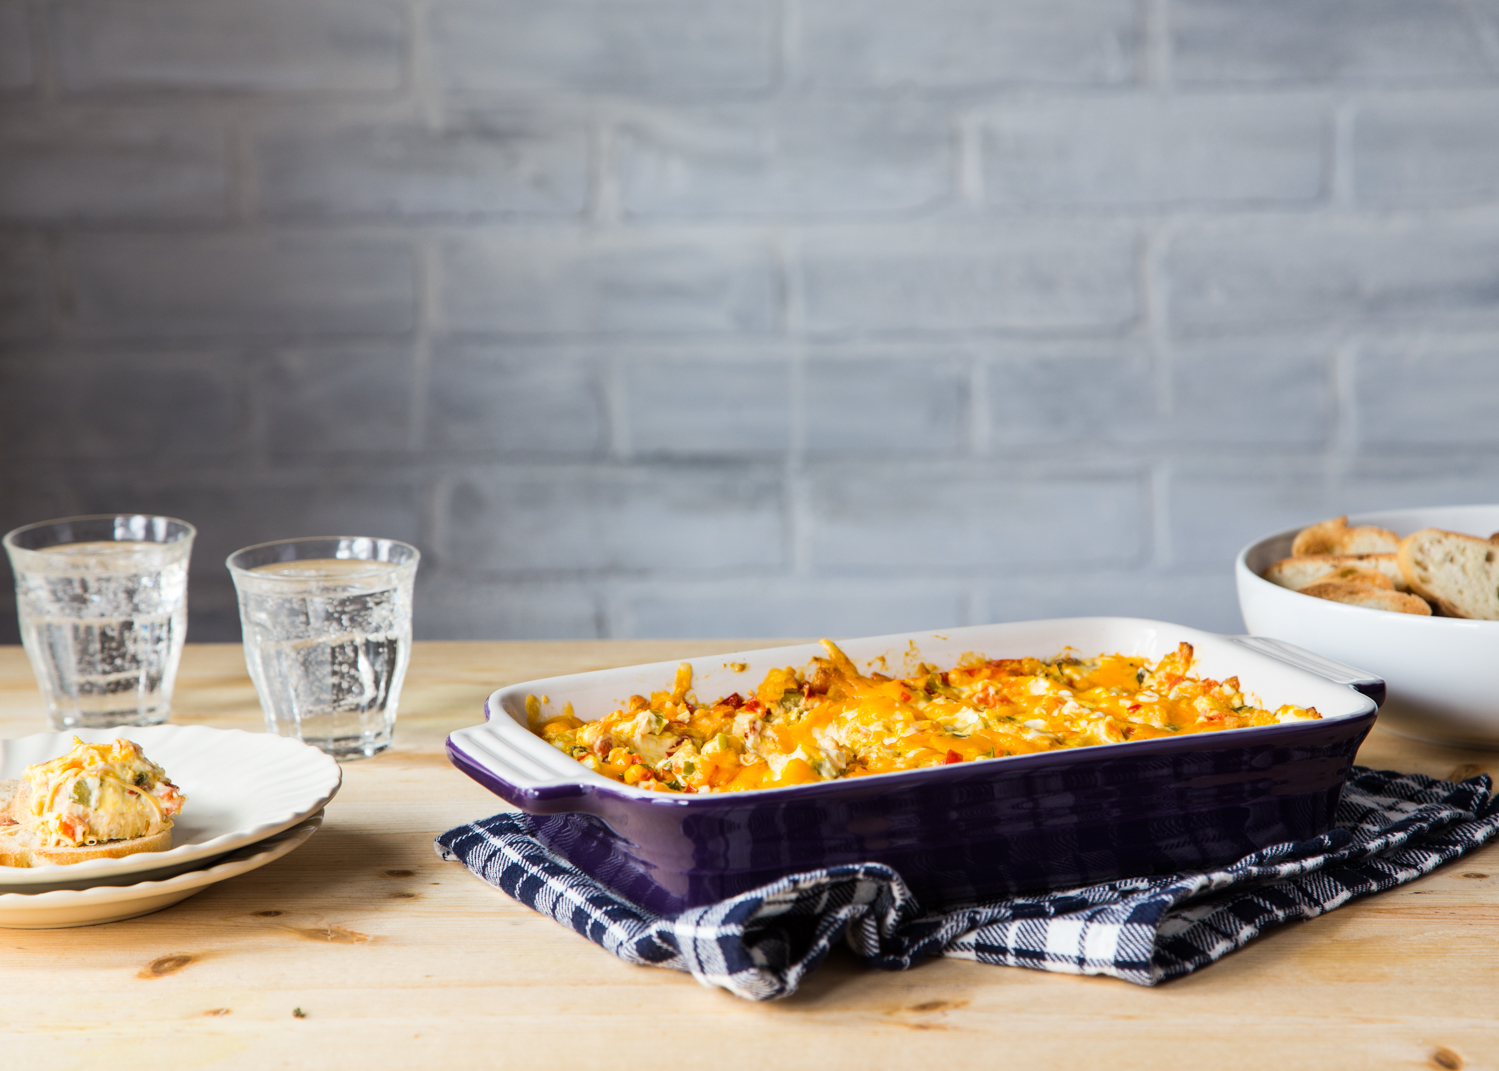 Baked Vegetable Cheese Dip made with Challenge Dairy Cream Cheese